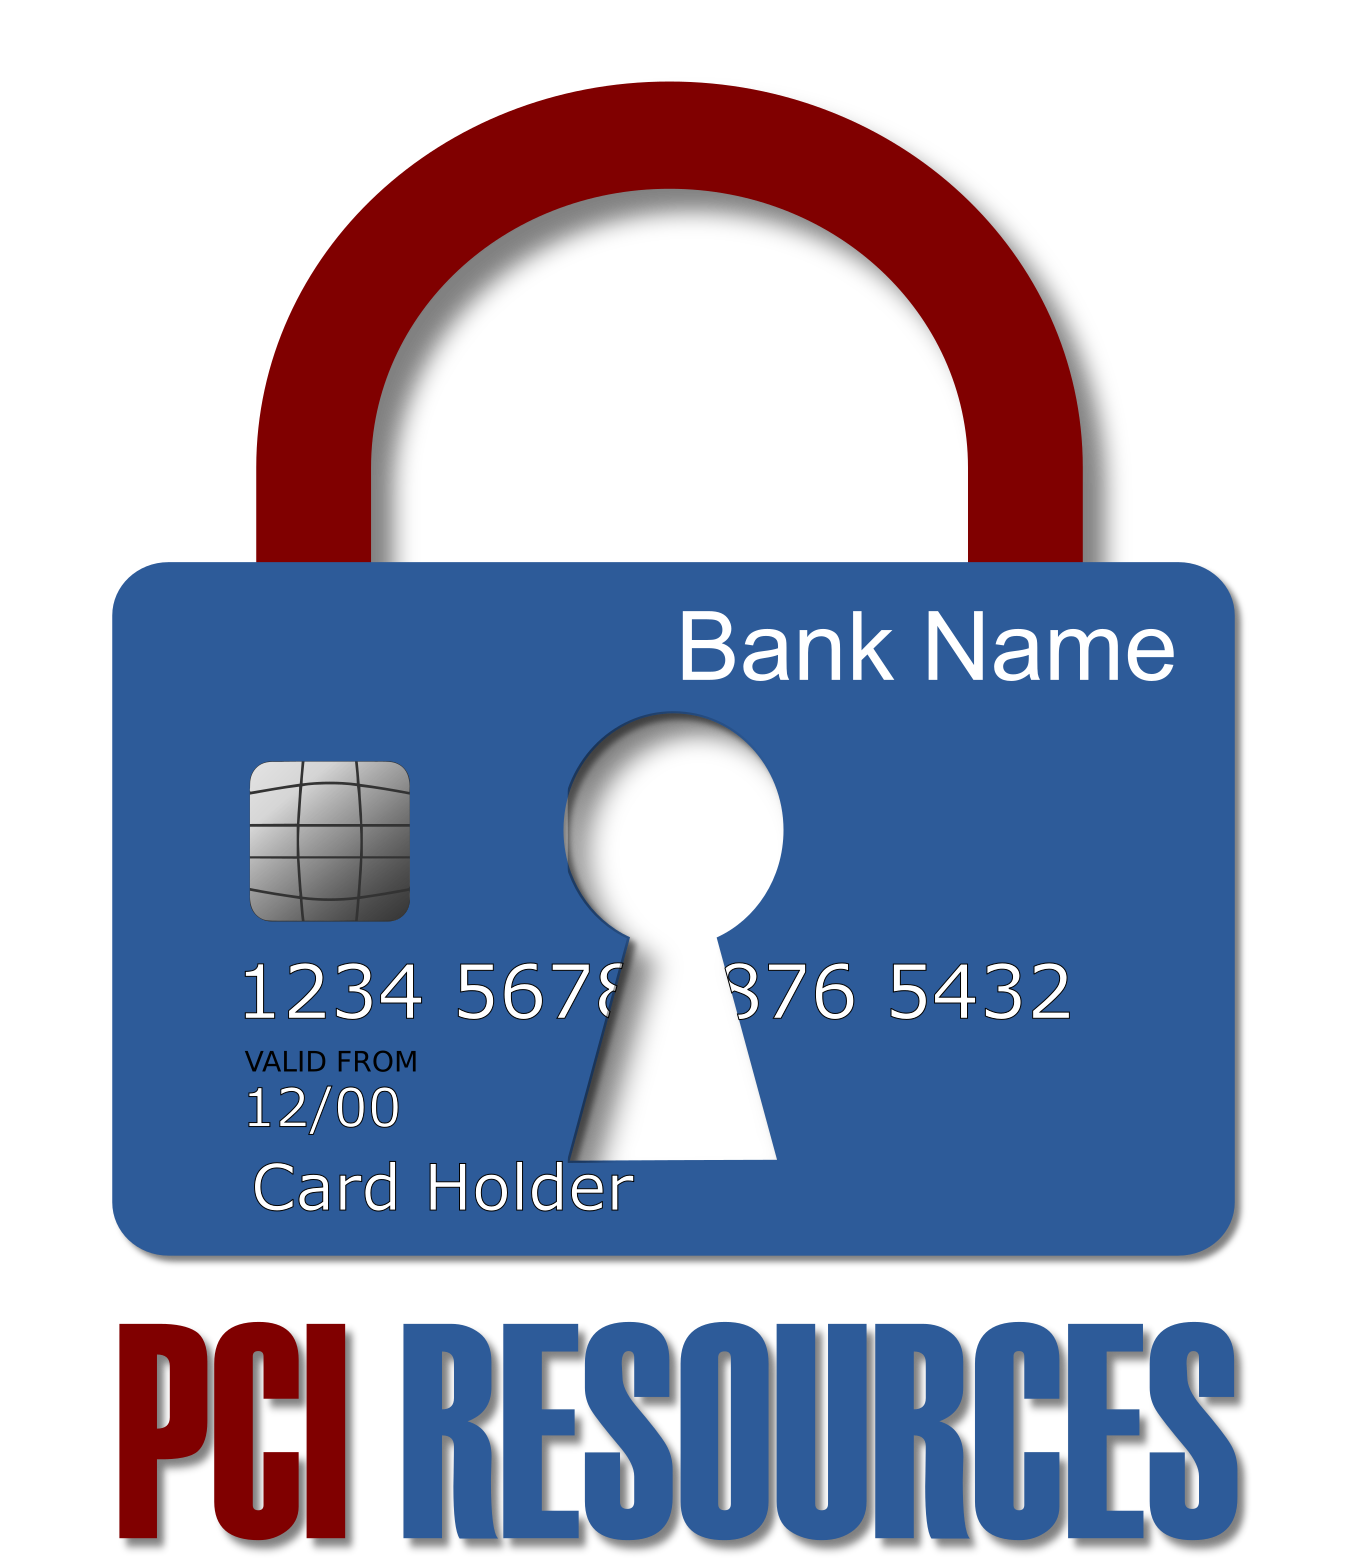 PCI Resources